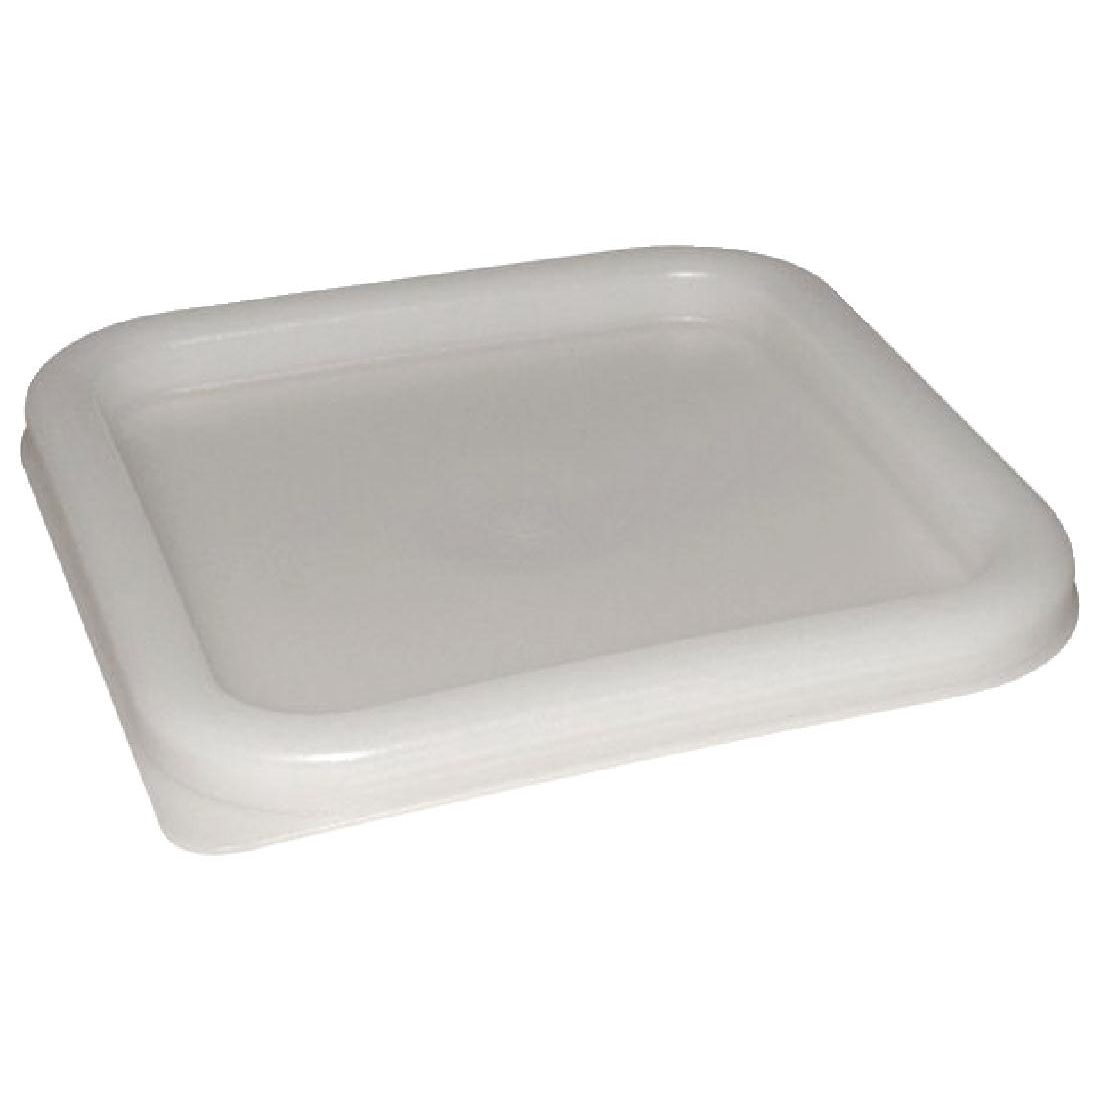 Vogue Large Square Lid - White